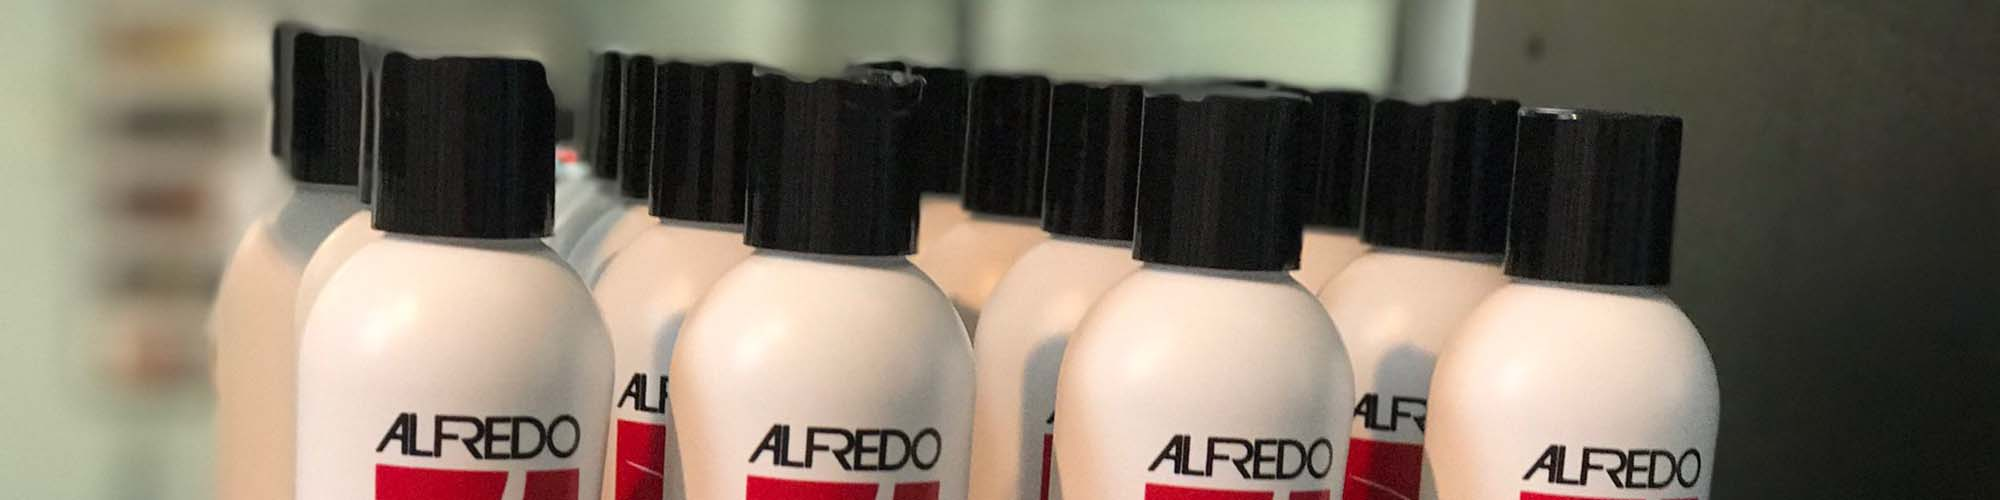 Alfredo Products